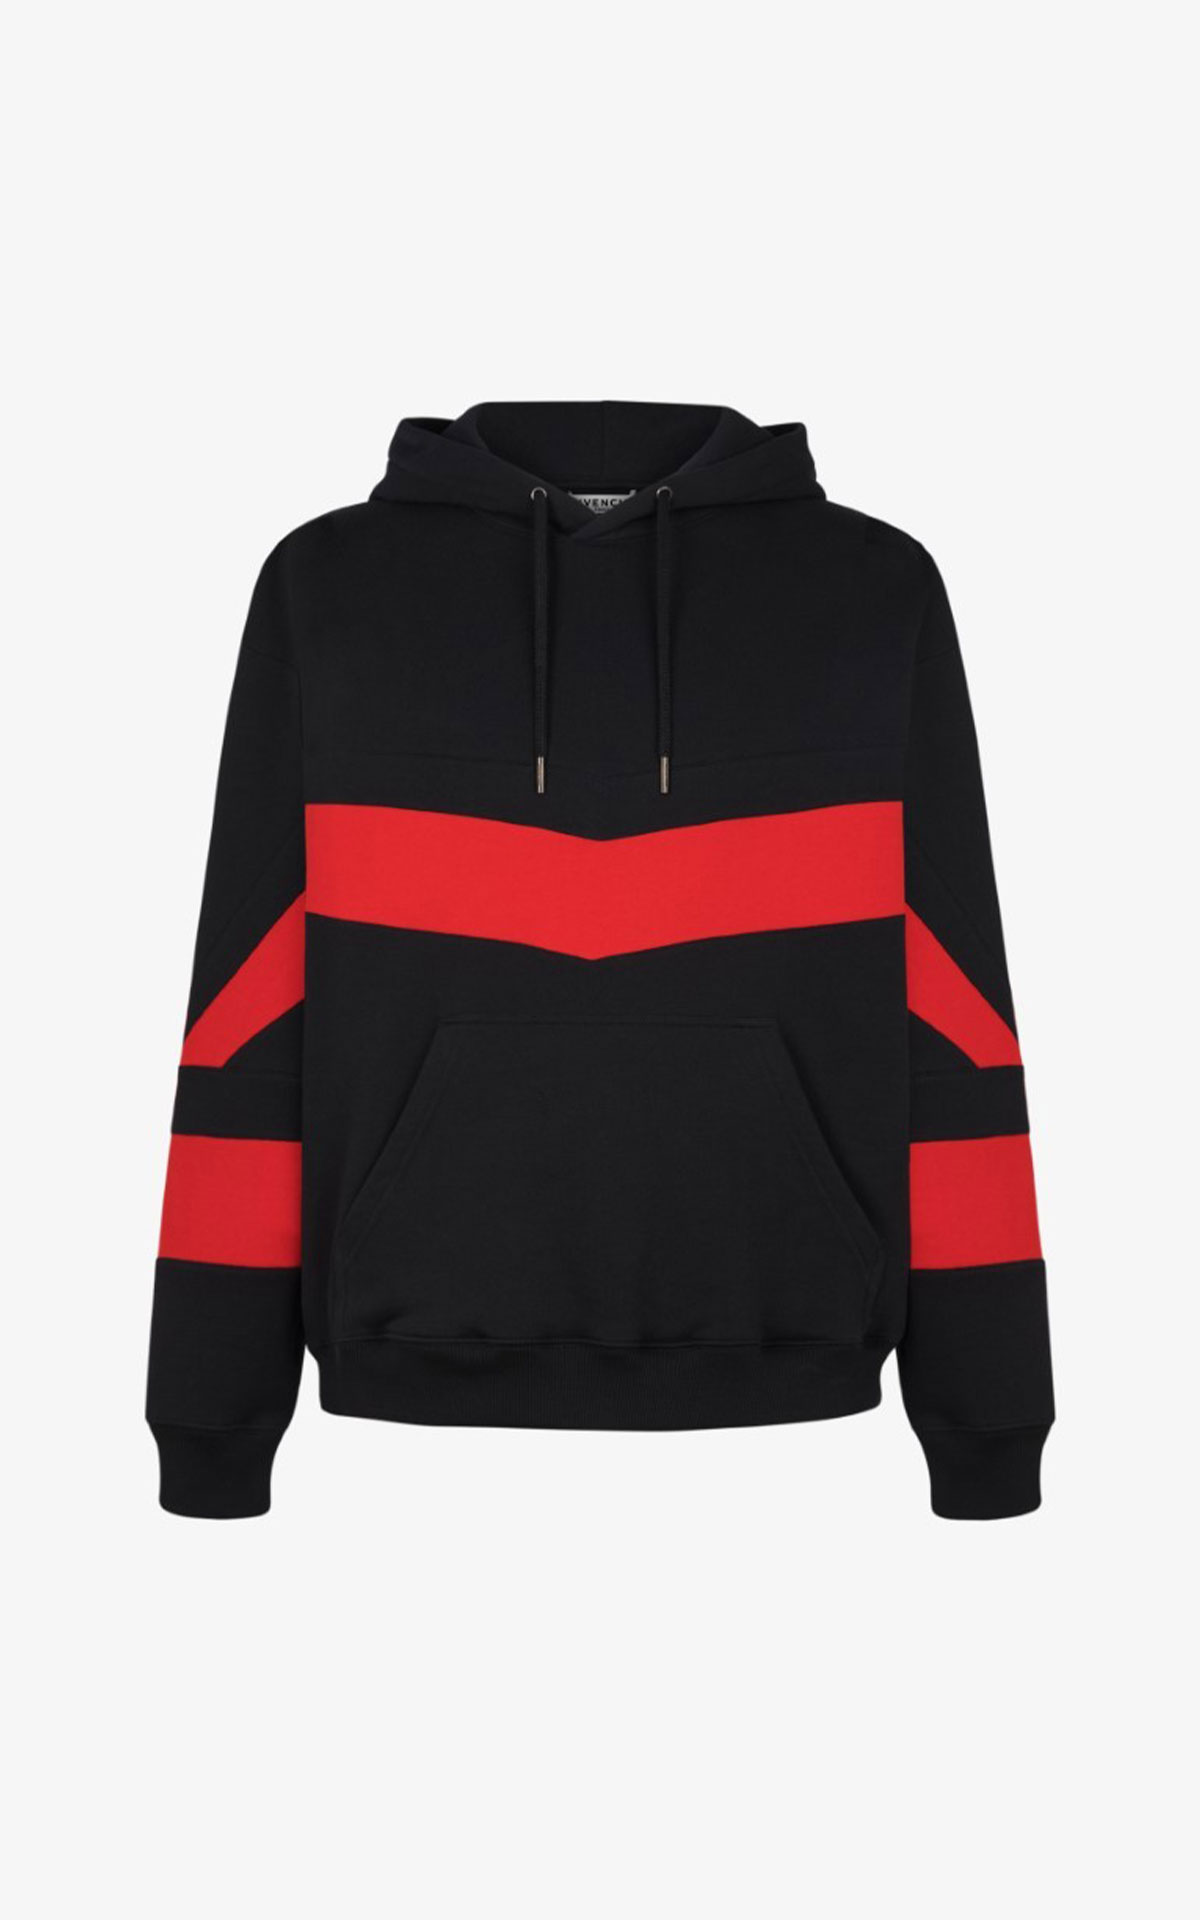 Givenchy Red and black hoodie from Bicester Village